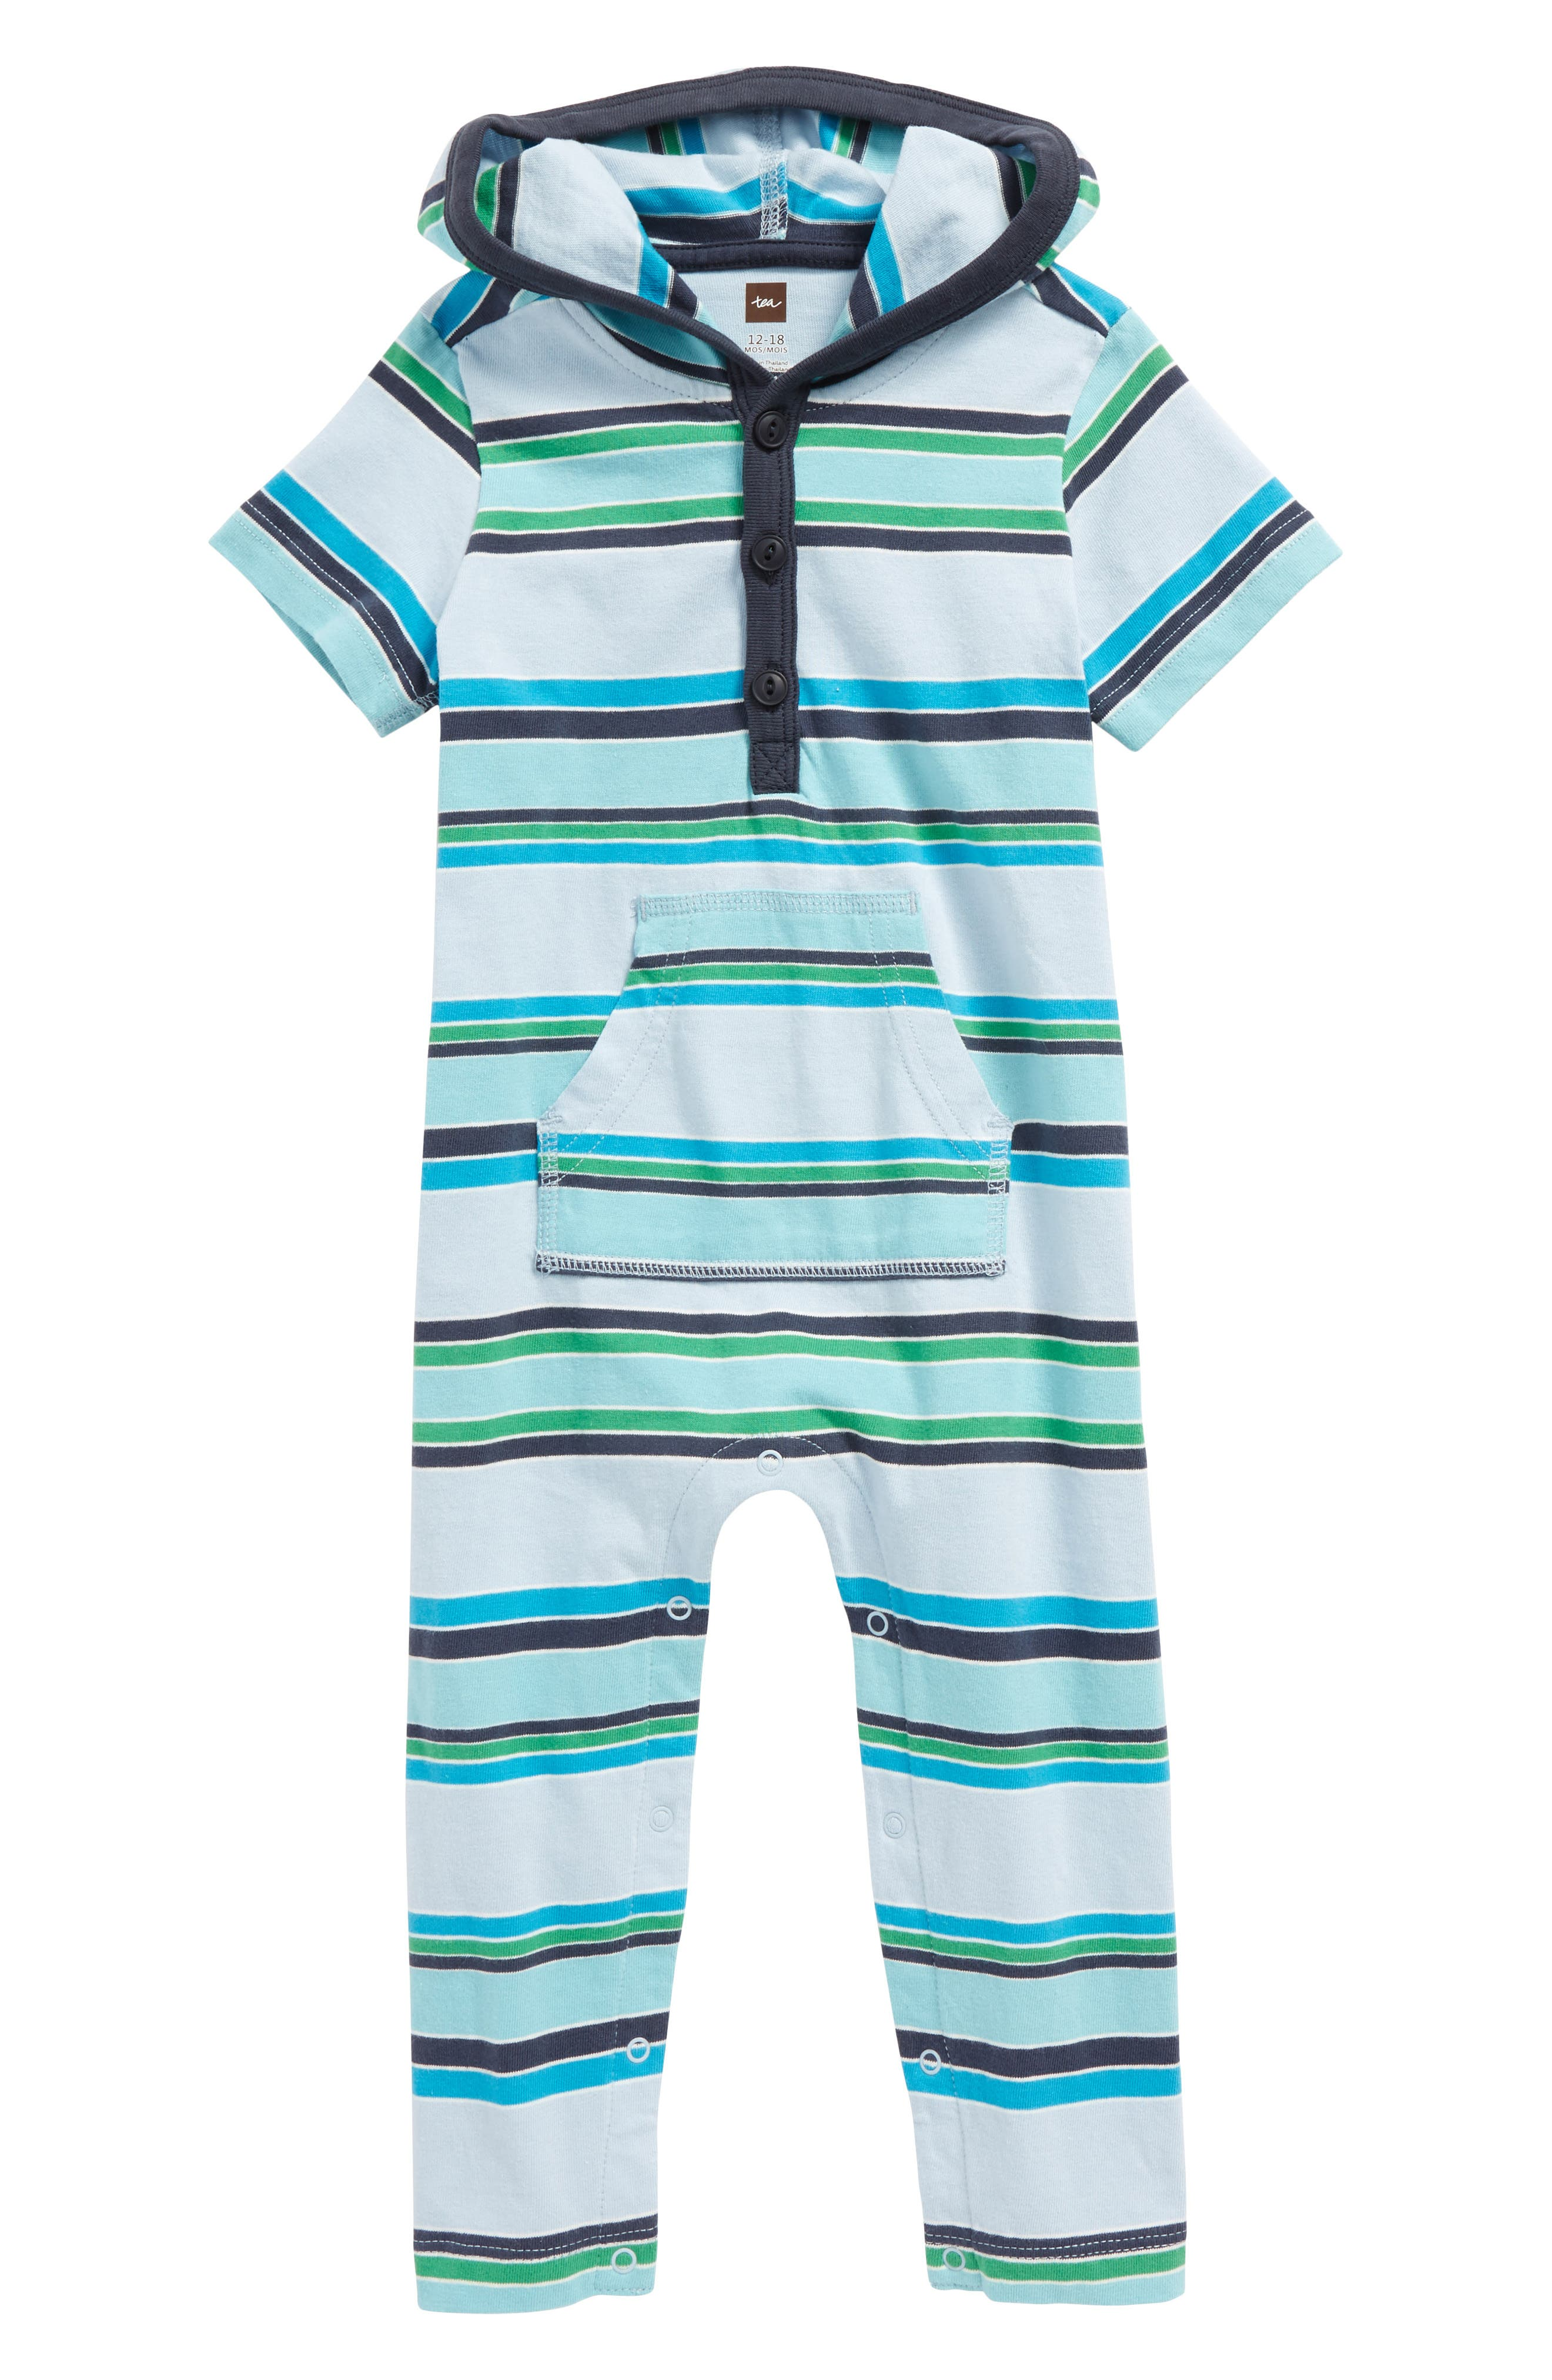 Main Image - Tea Collection Horizon Hooded Romper (Baby Boys)